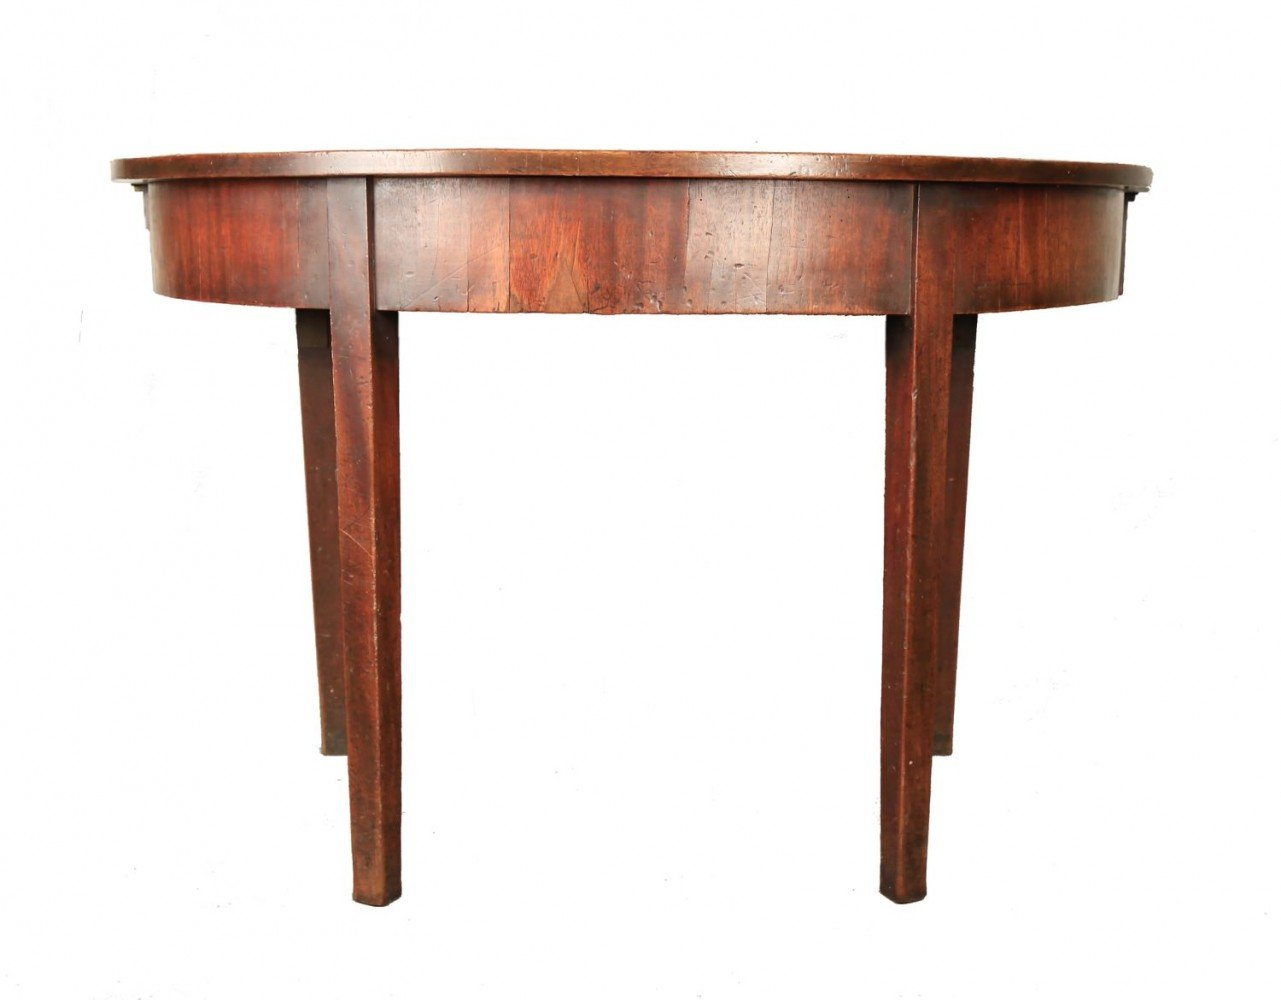 Early 18thc. An English Mahogany Demilune Table